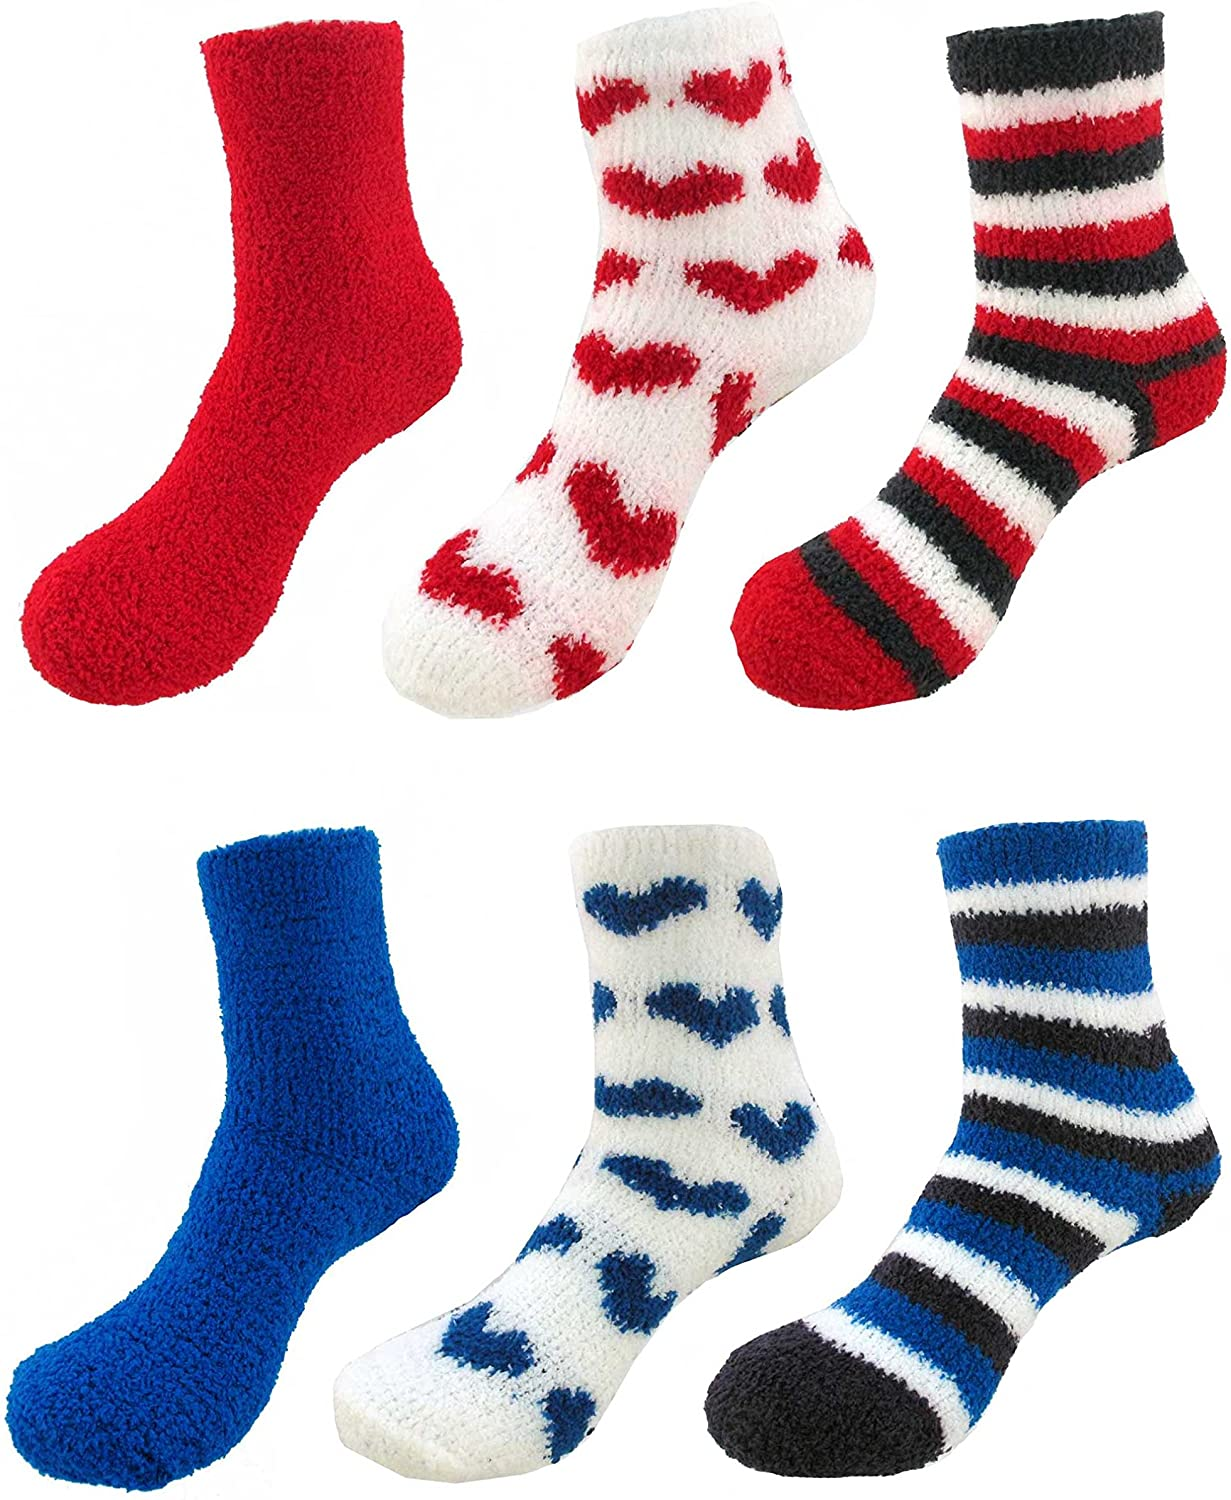 BambooMN Assorted Super Soft Cozy Warm Fuzzy Gradient Socks - 6 Pair Value Pack